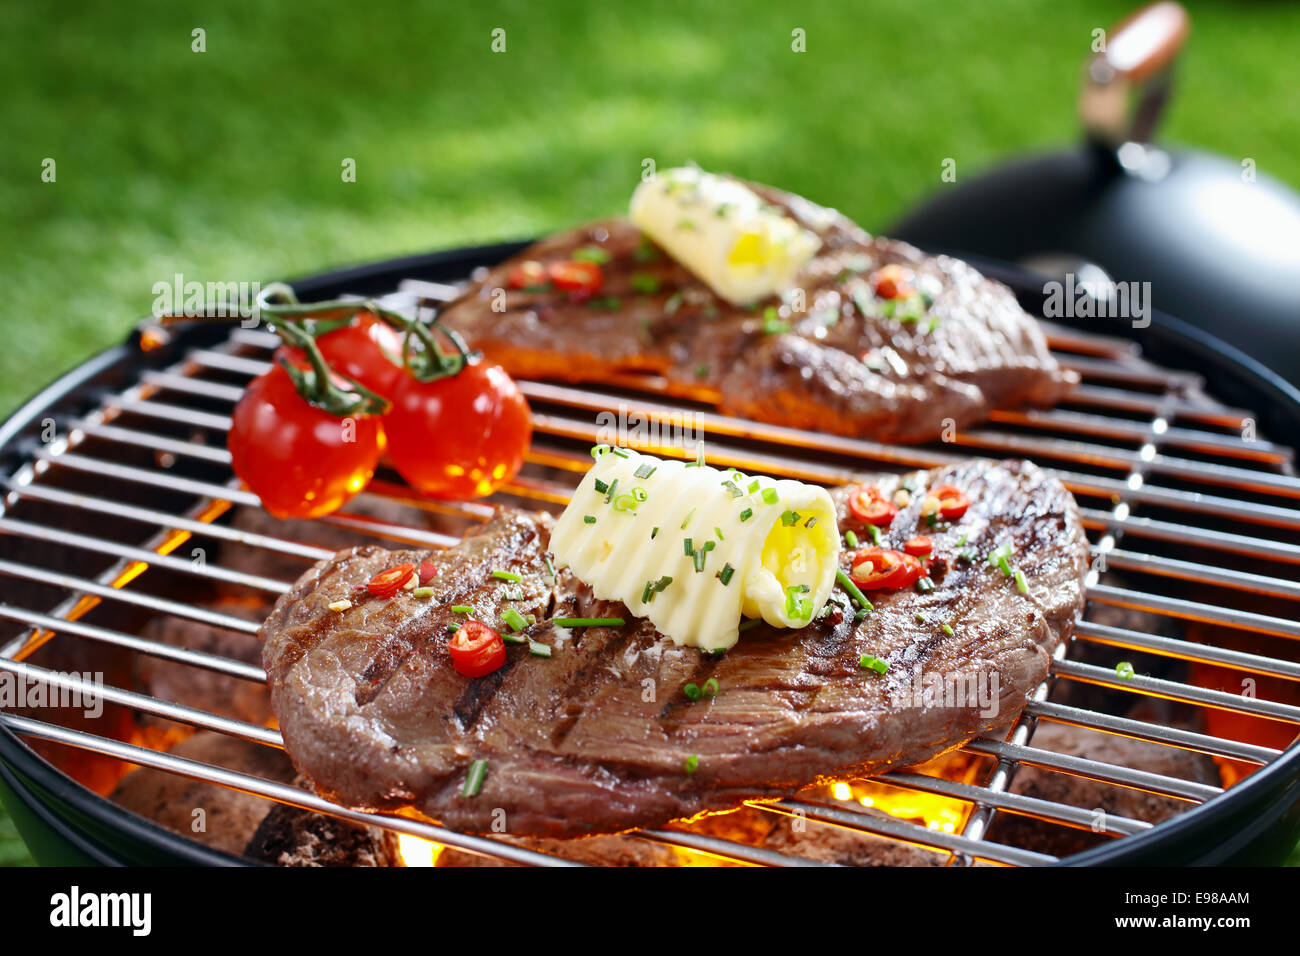 Succulent portion of lean steak topped with butter and herbs grilling on a grid over hot coals in a barbecue - Stock Image